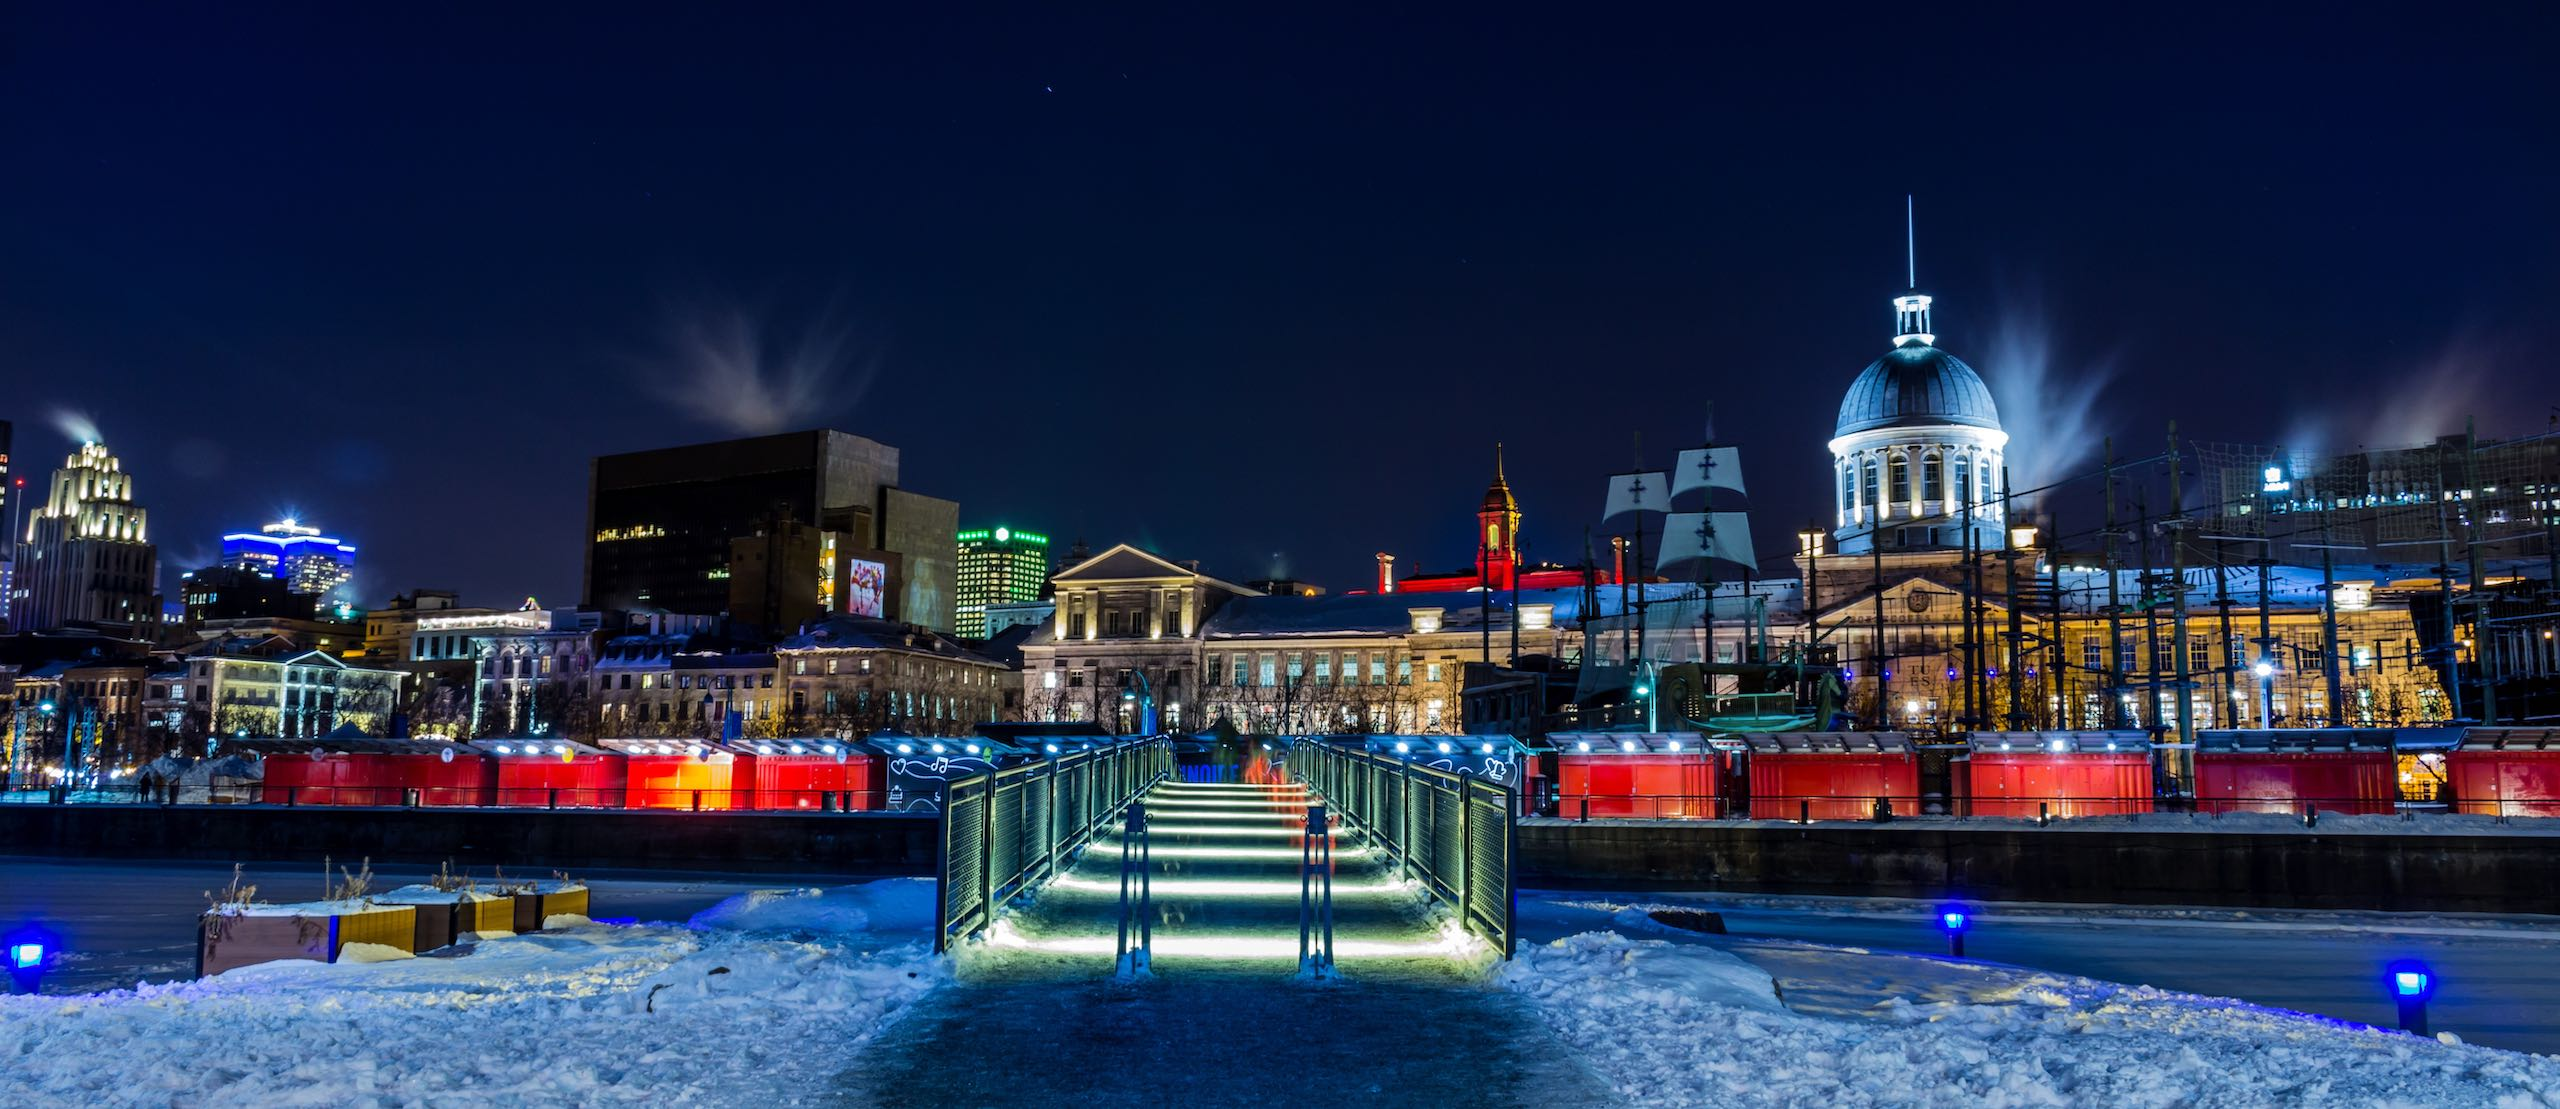 Old Port of Montreal |Photo: Walid Amghar